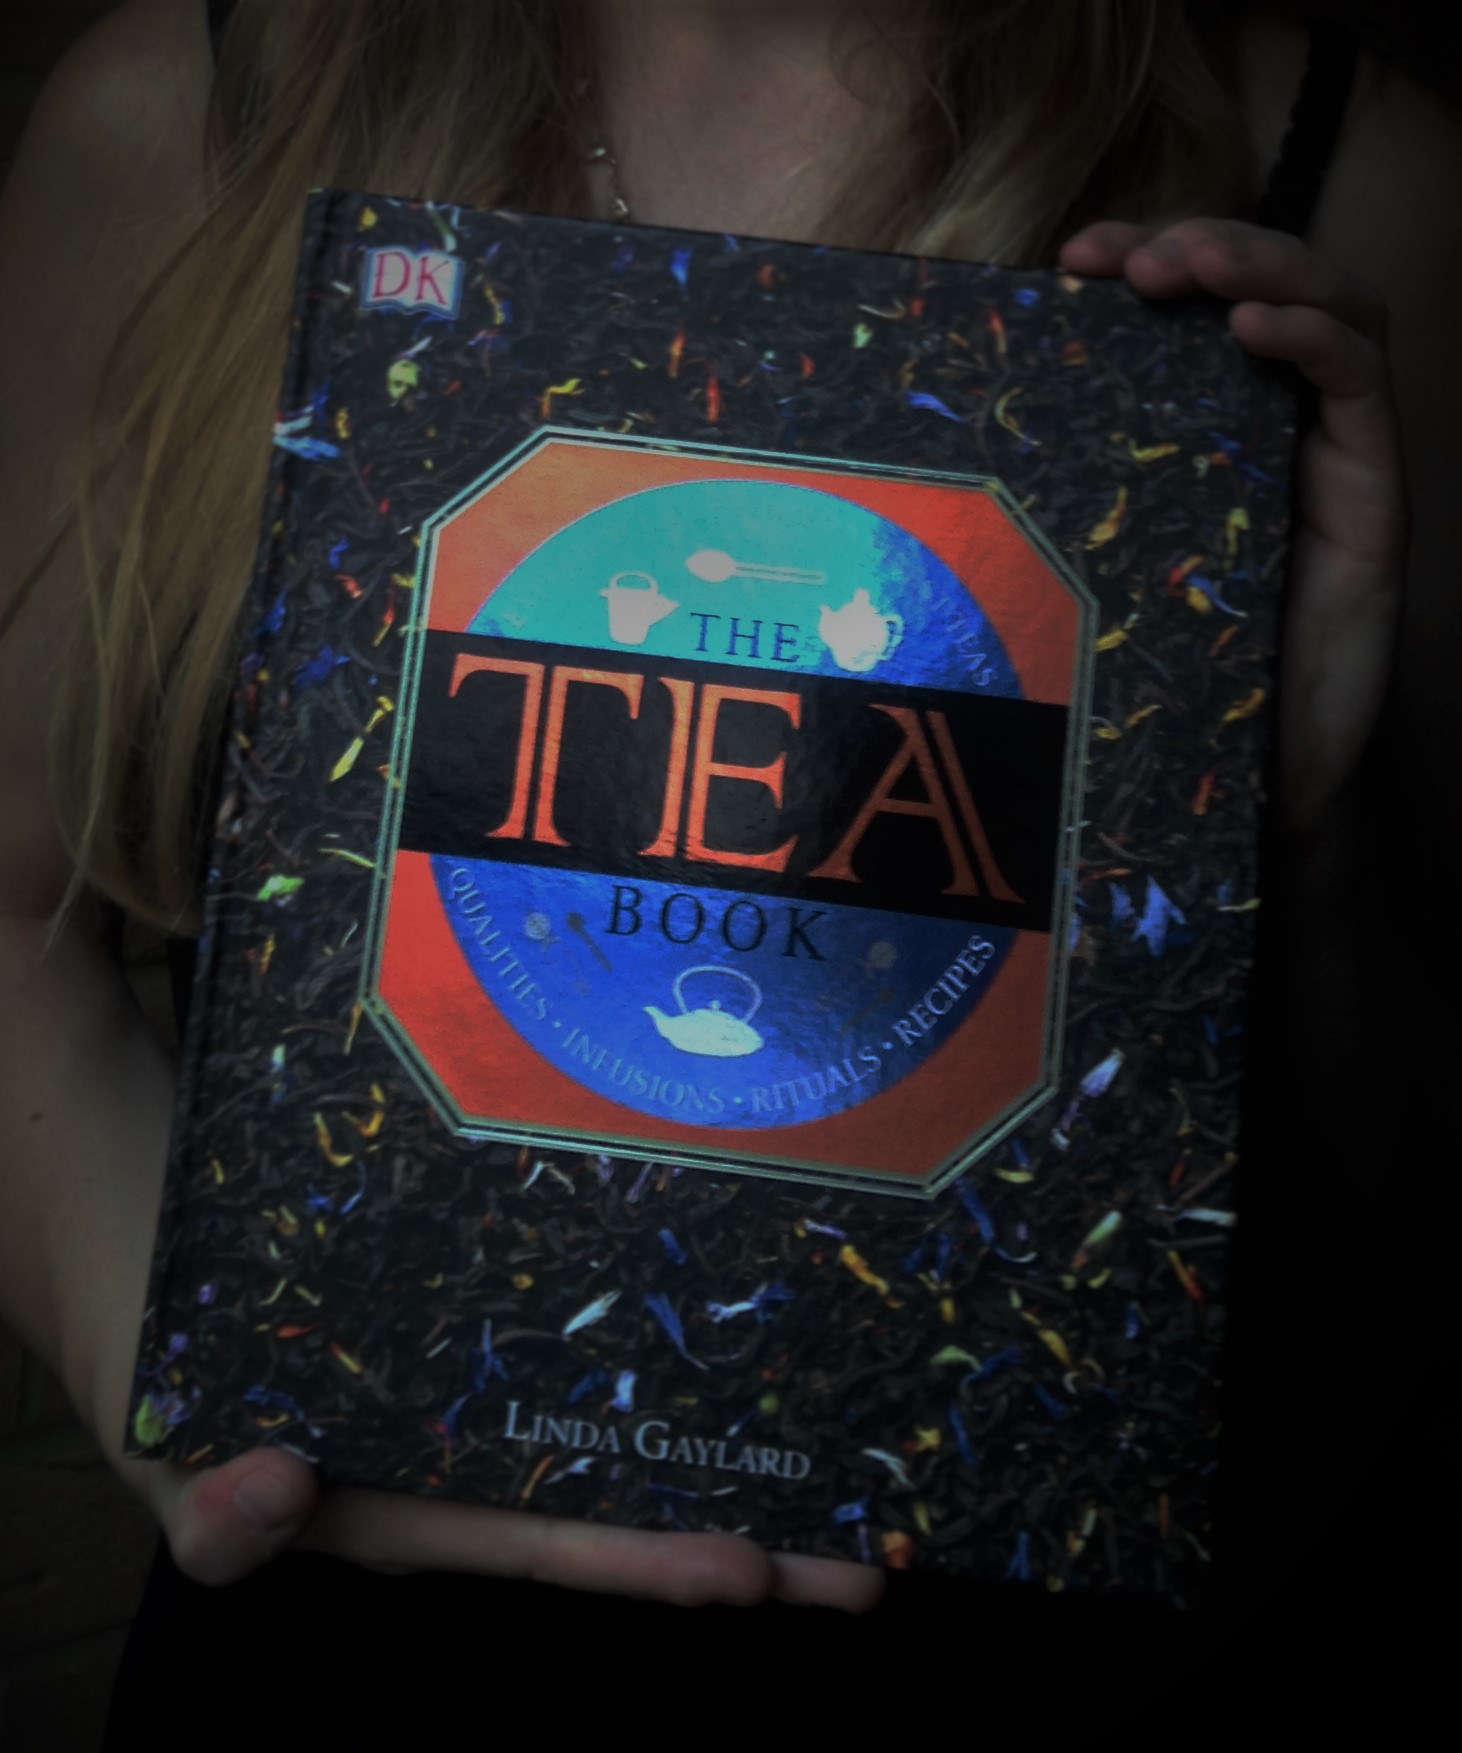 Taste the Tea and The Tea Book by Linda Gaylard